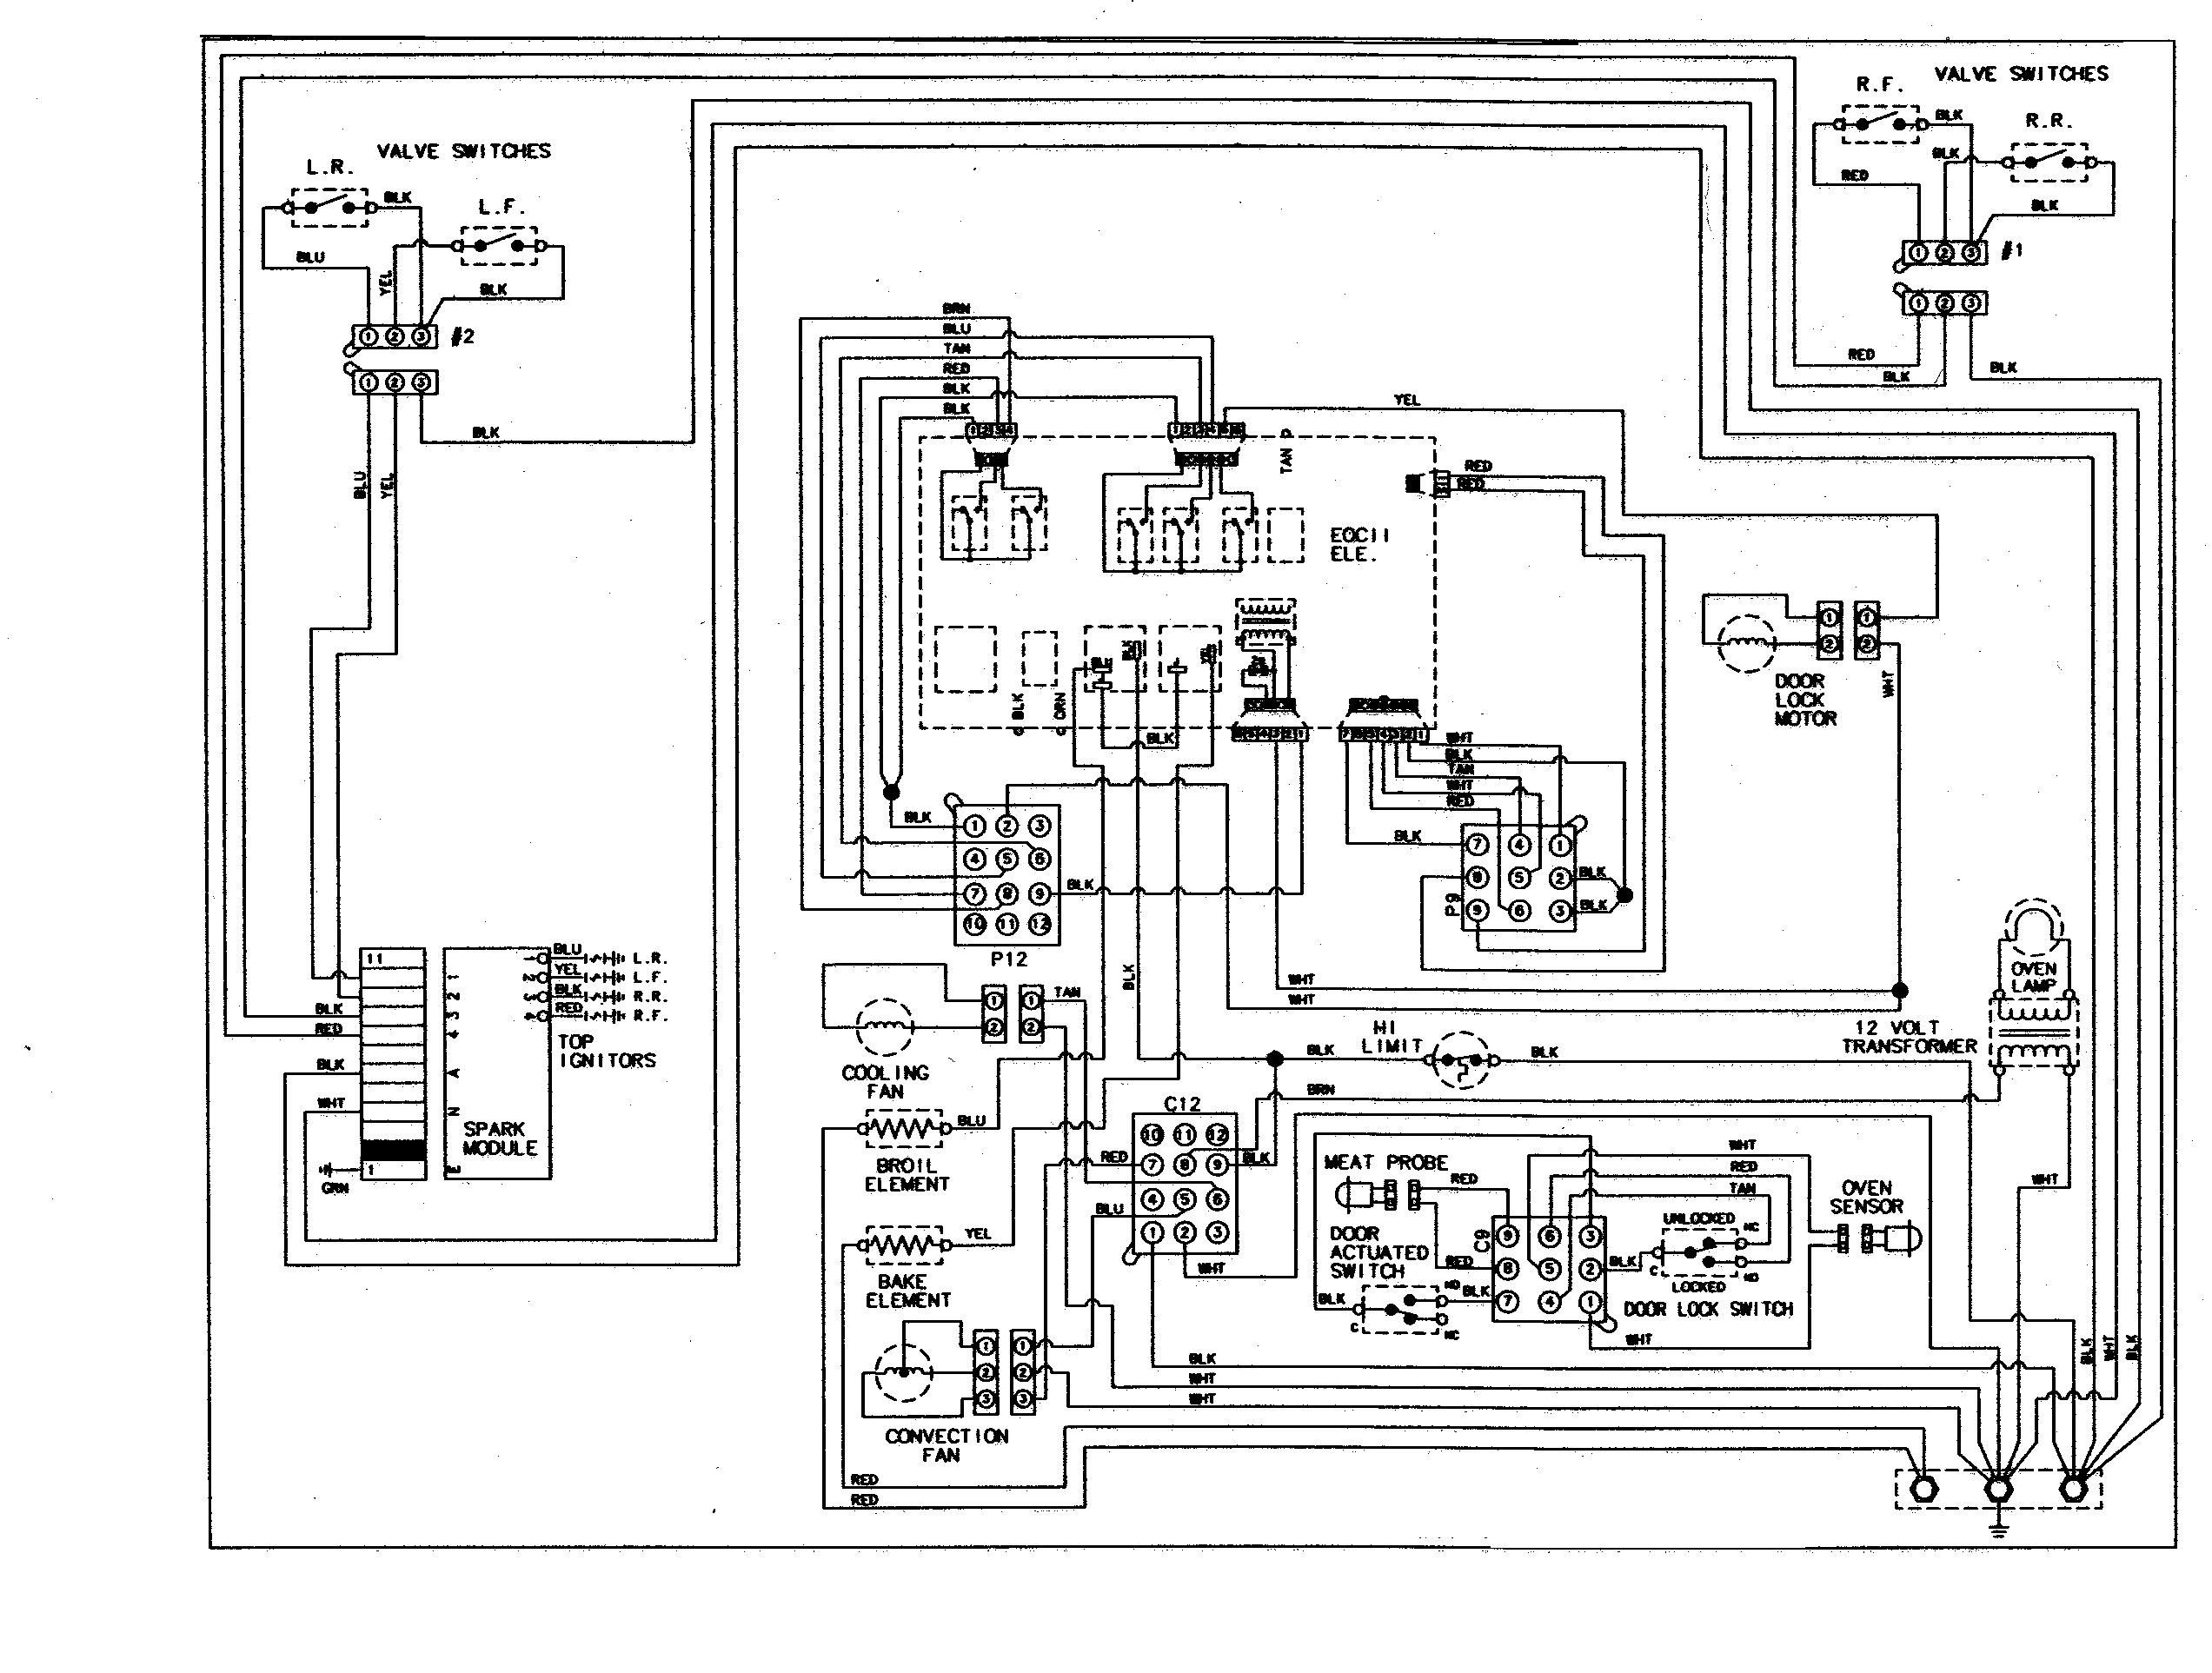 wiring diagram for kitchenaid oven wiring diagram sys Whirlpool Oven Wiring Diagram